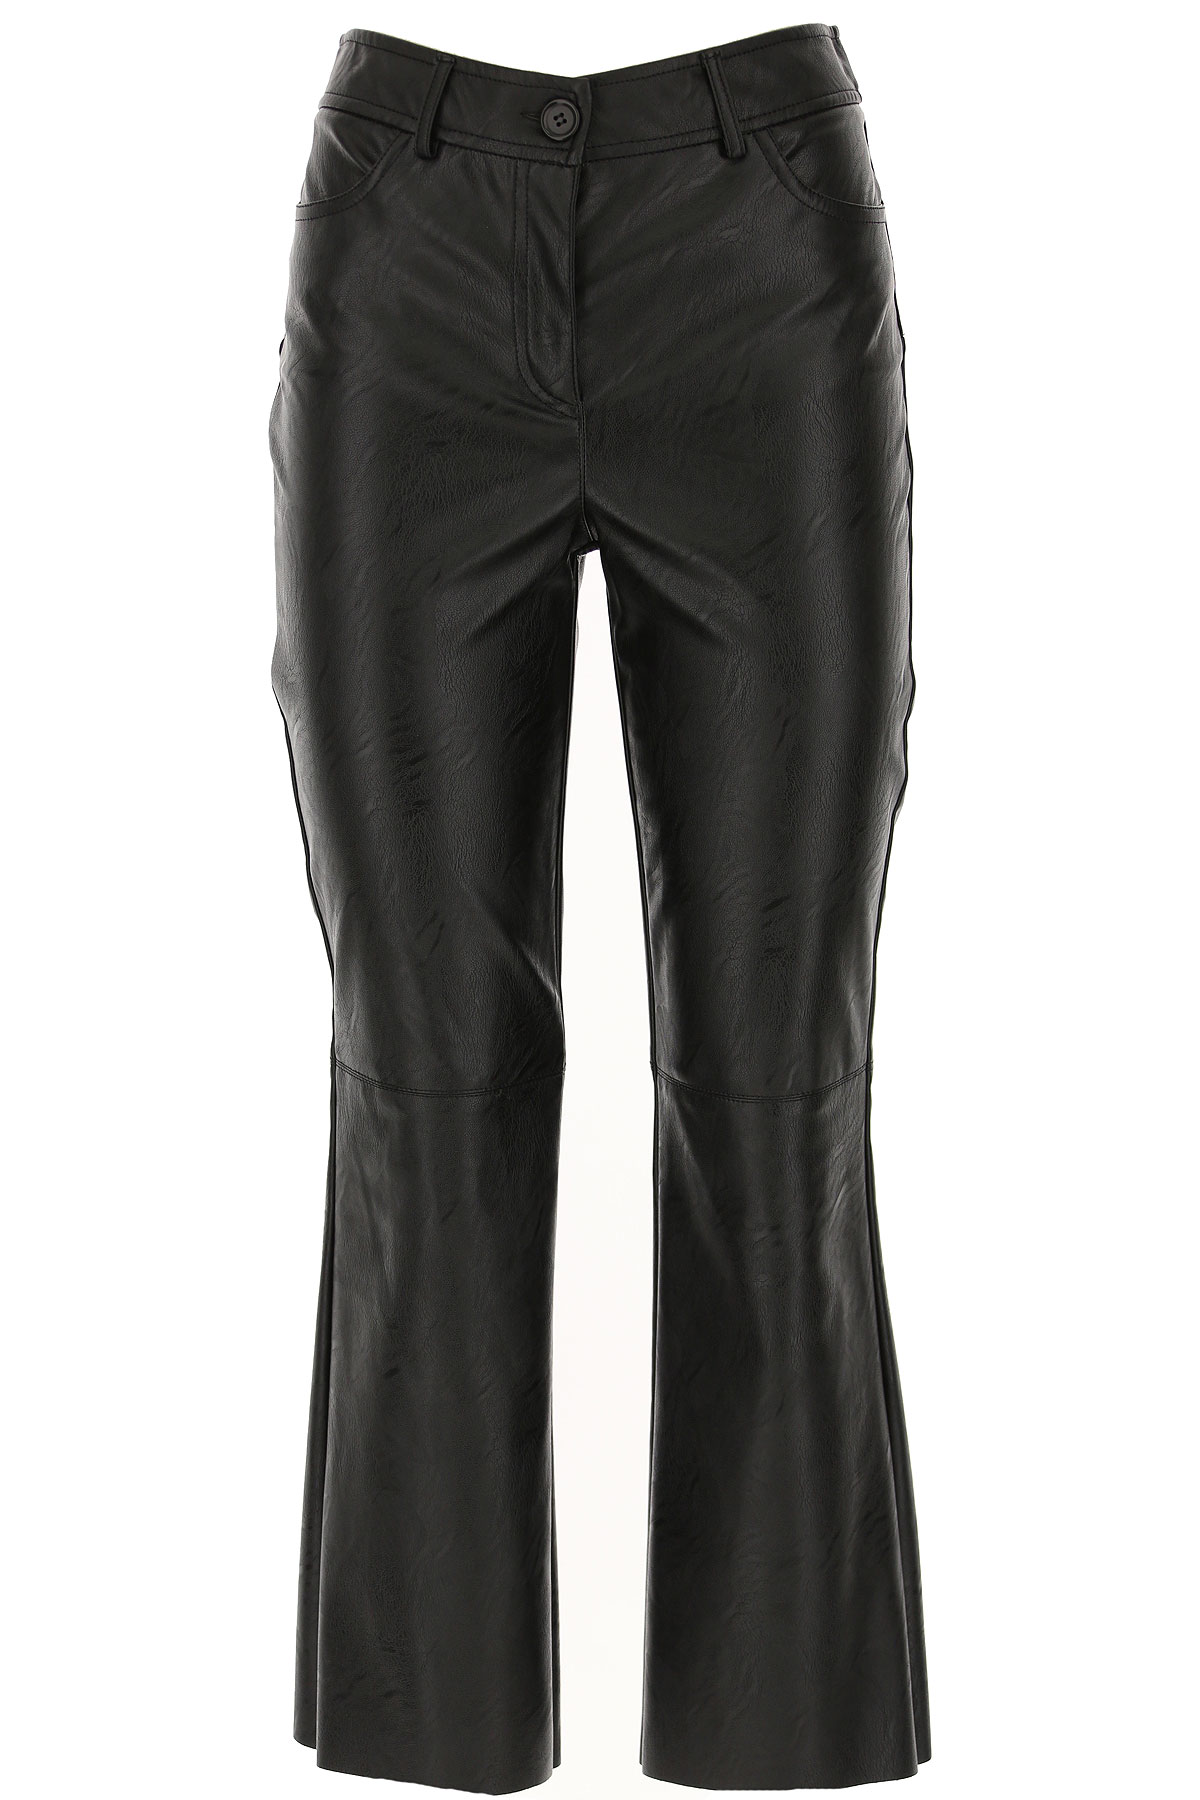 Aniye By Womens Clothing On Sale, Black, polyestere, 2019, 2 4 6 8